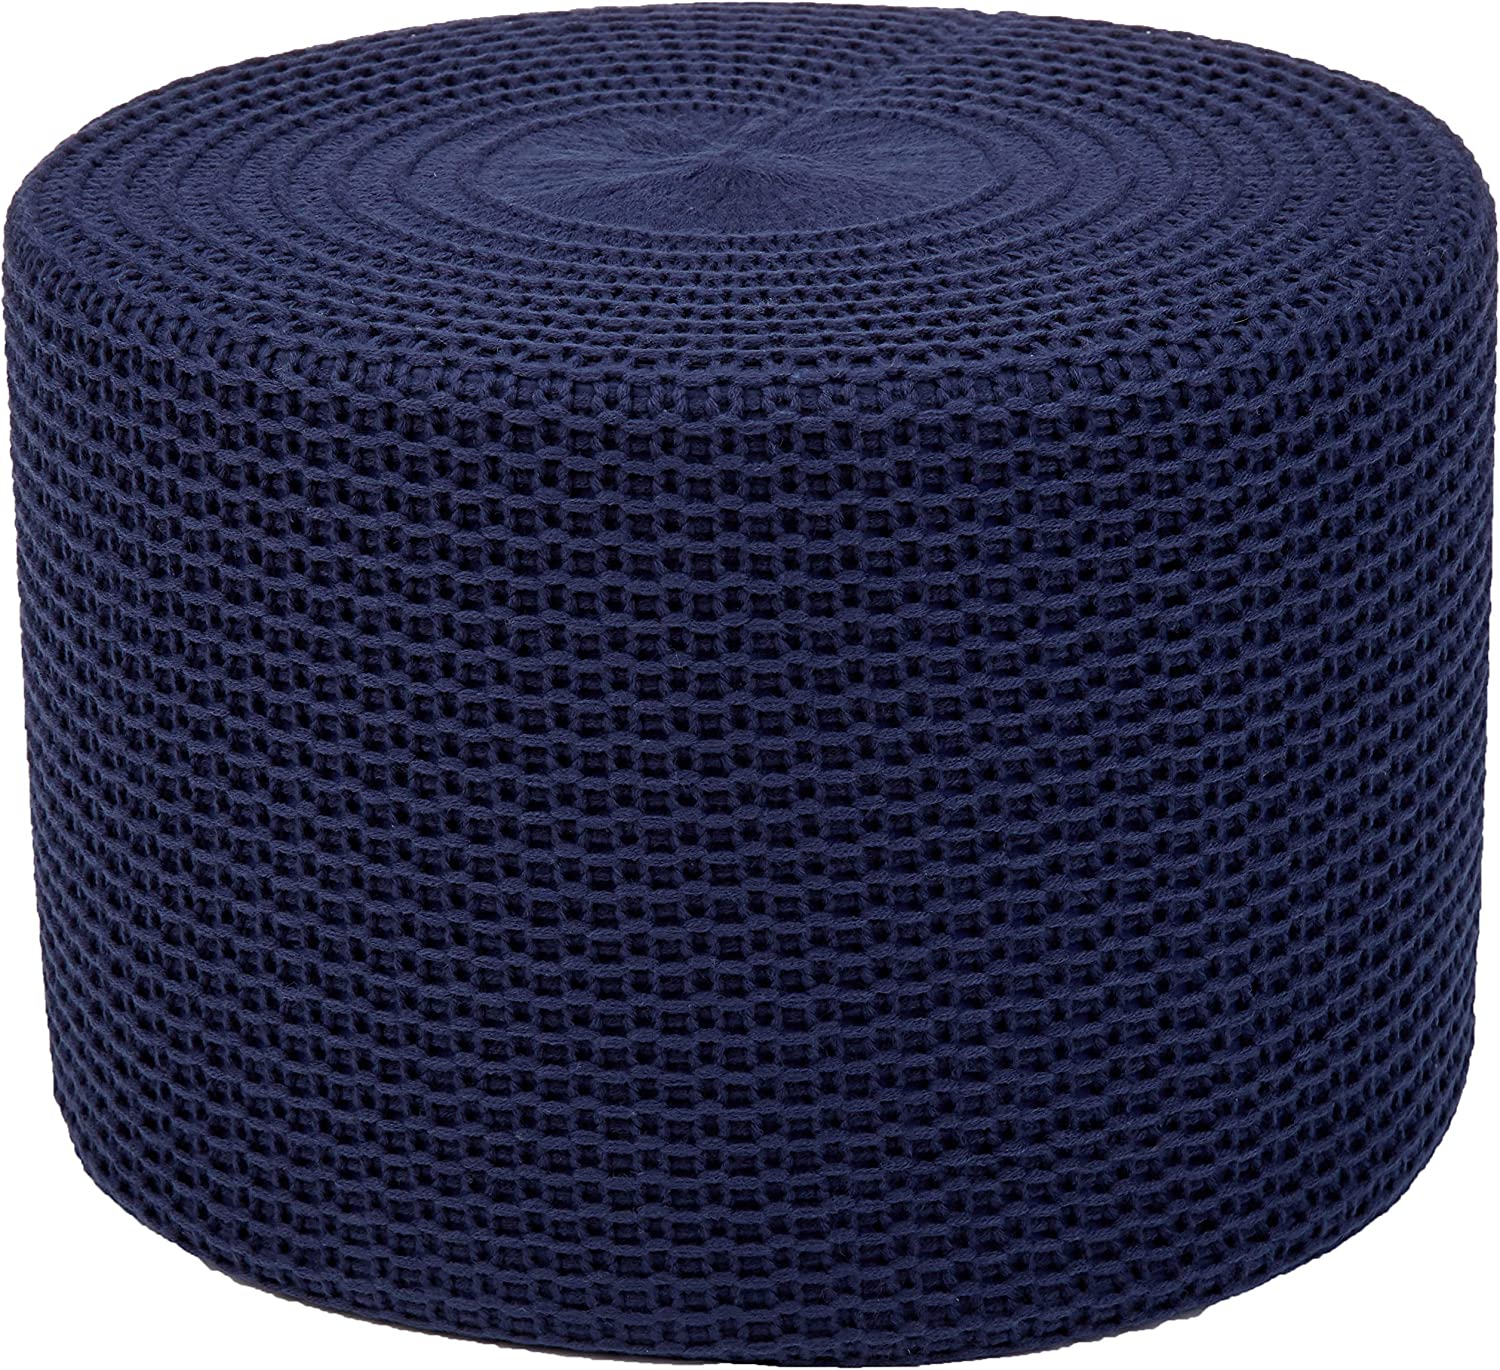 AmazonBasics Knit Foam Floor Pouf Ottoman, Navy